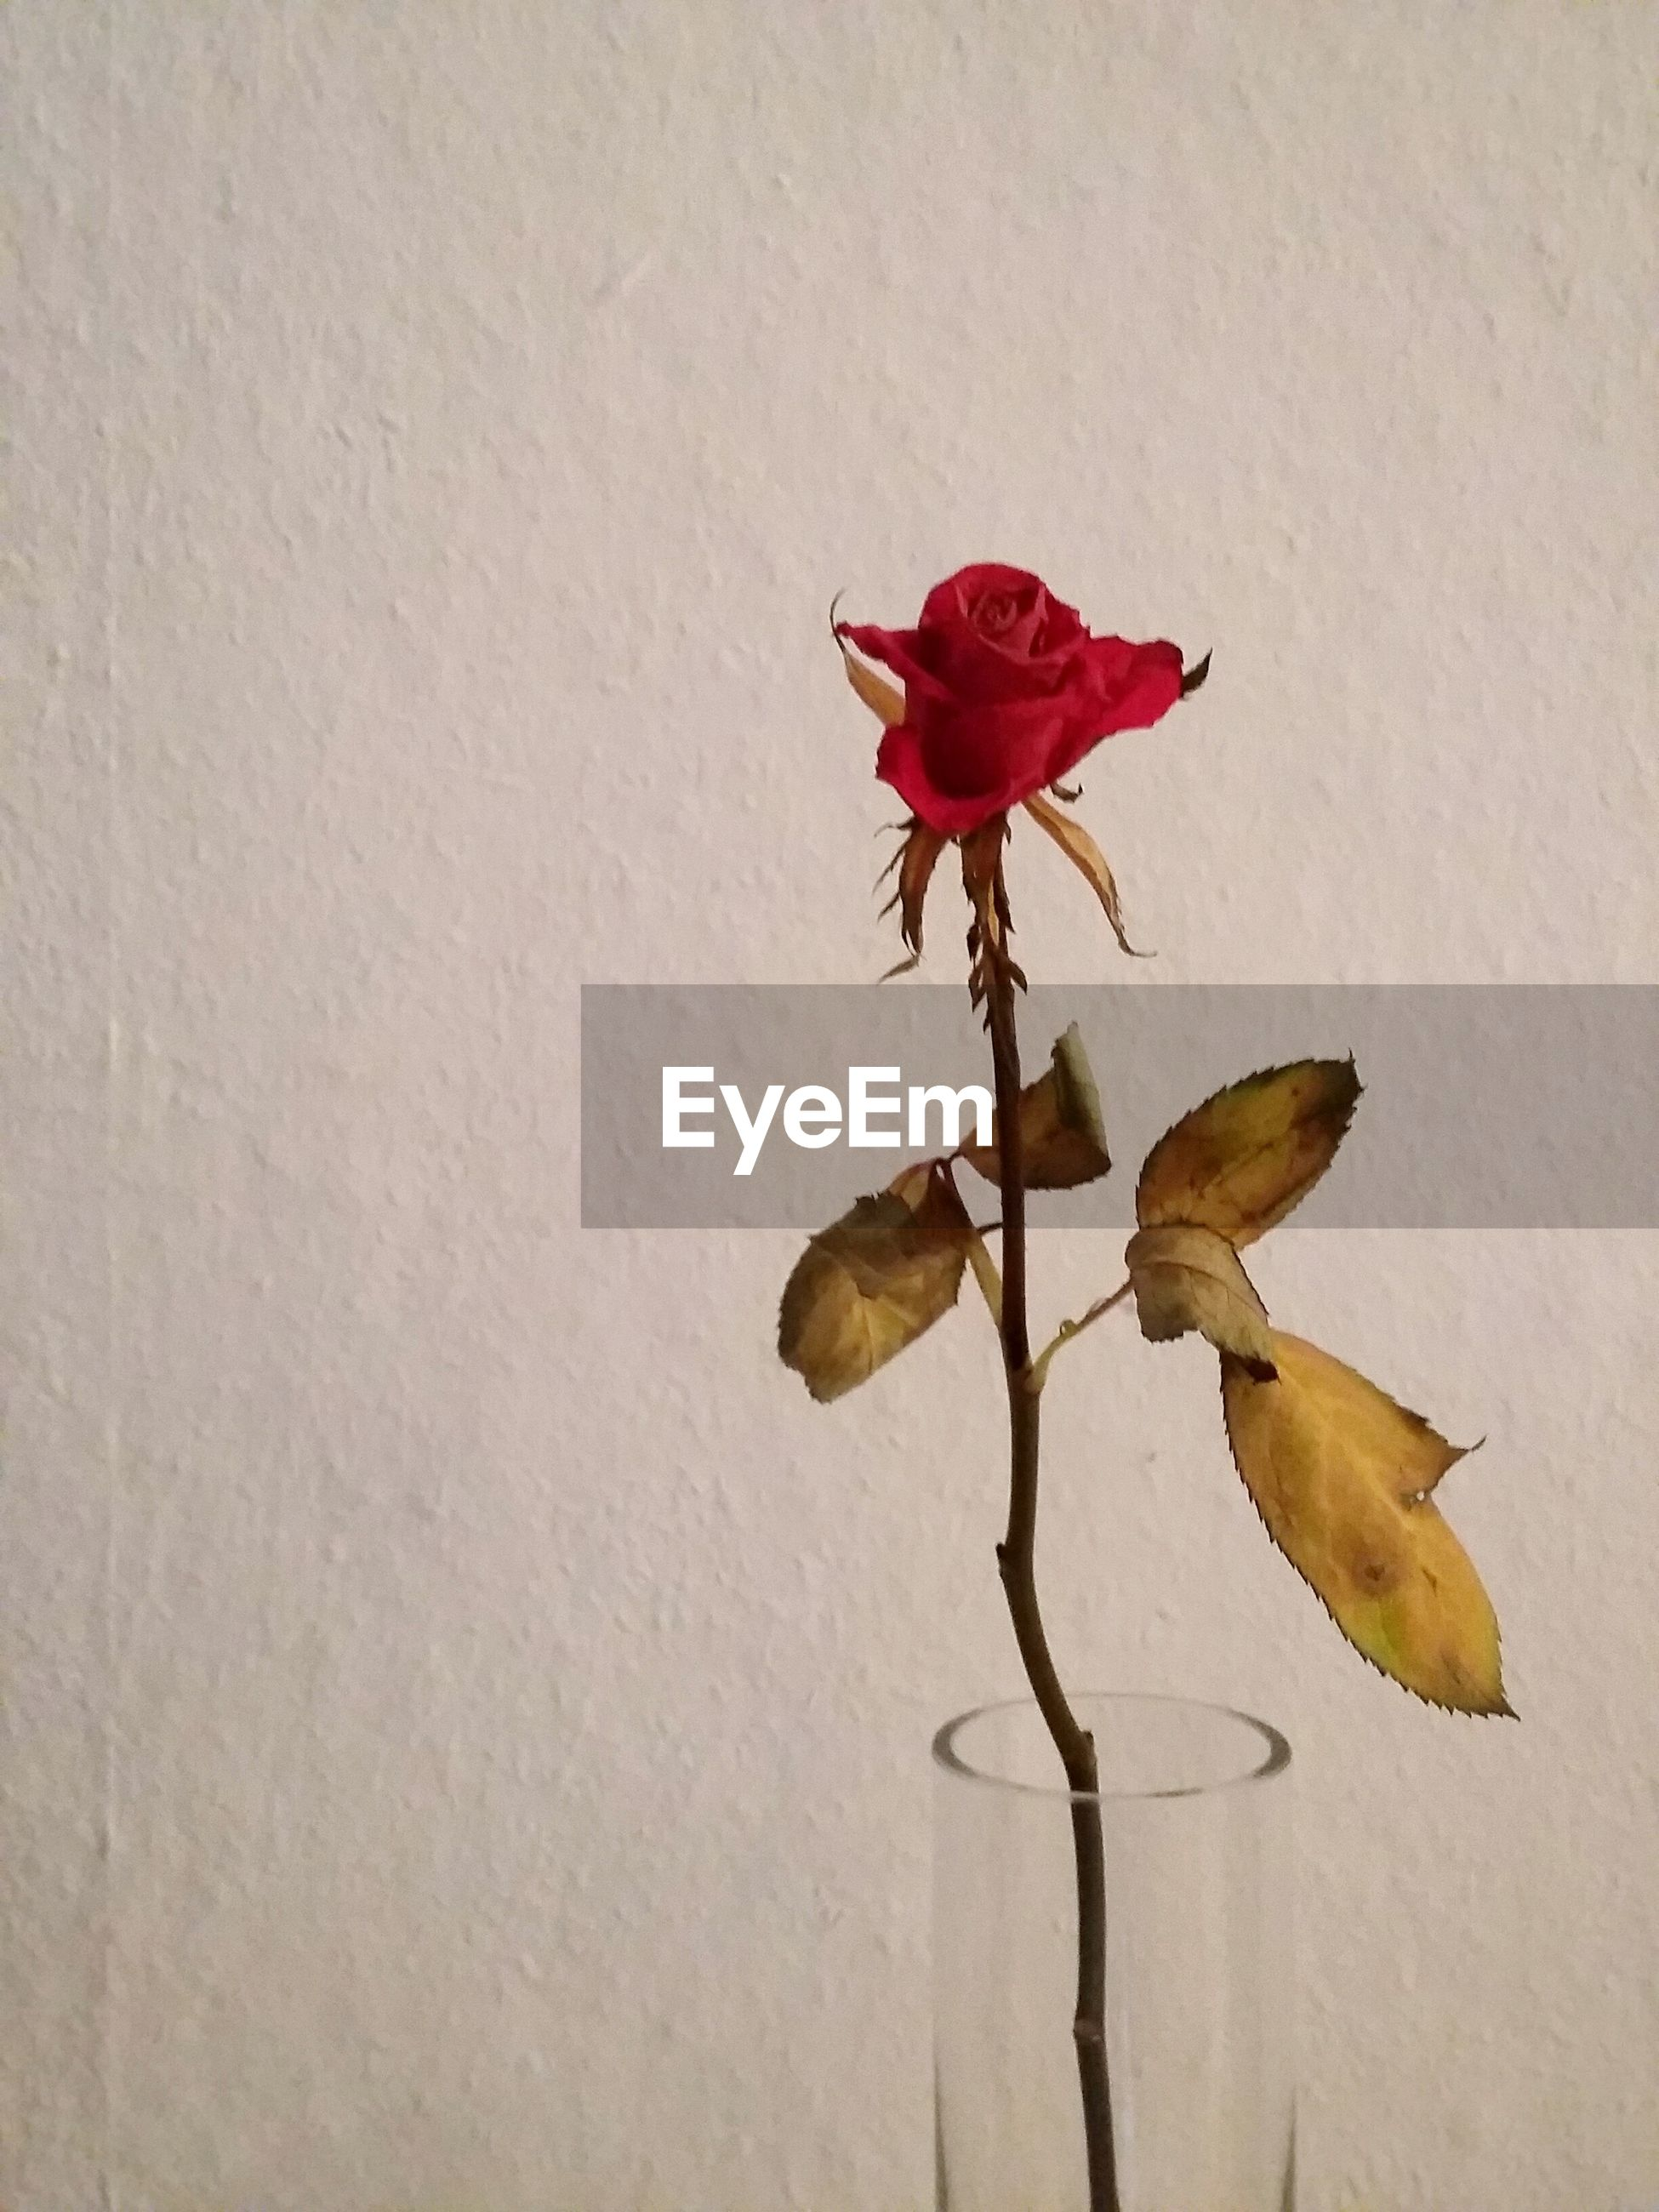 Red rose in vase against wall